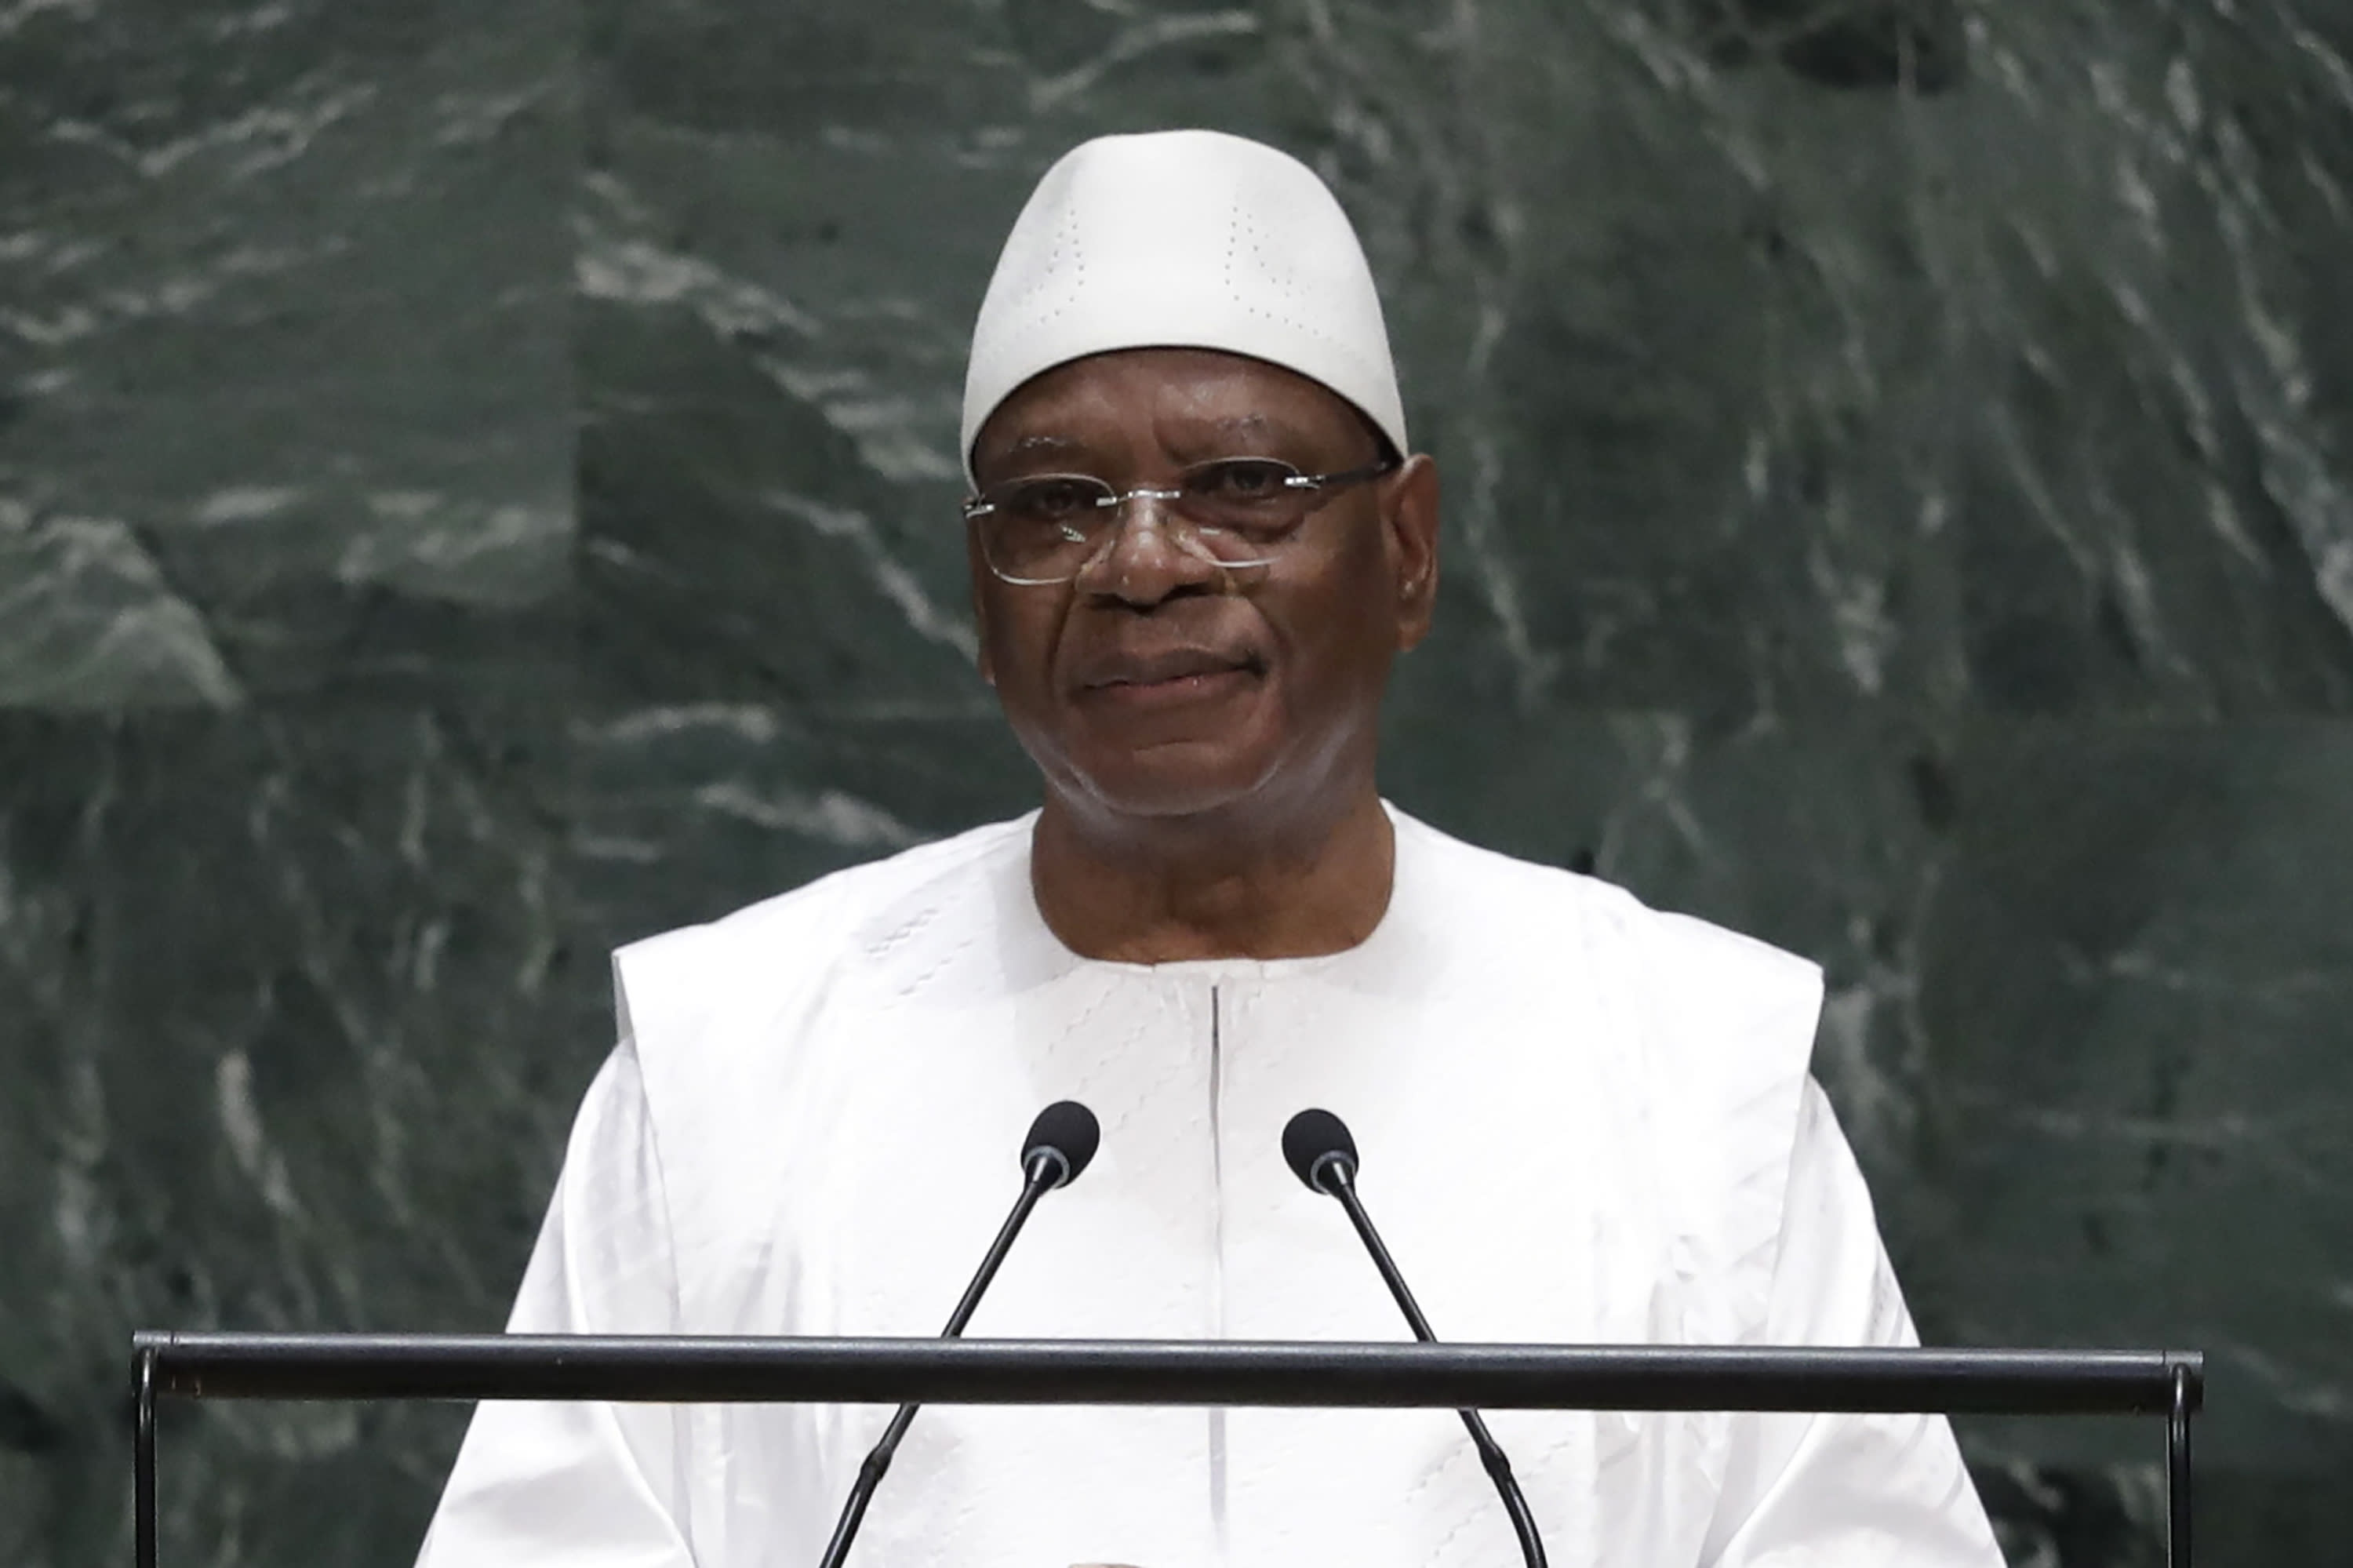 FILE - In this Sept. 25, 2019, file photo, Mali's President Ibrahim Boubacar Keita addresses the 74th session of the United Nations General Assembly, at the United Nations headquarters. In a televised midnight speech, Keita promised early Thursday, July 9, 2020, to reform the country's constitutional court in a bid to quell another round of protests calling for his resignation. (AP Photo/Frank Franklin II, File)